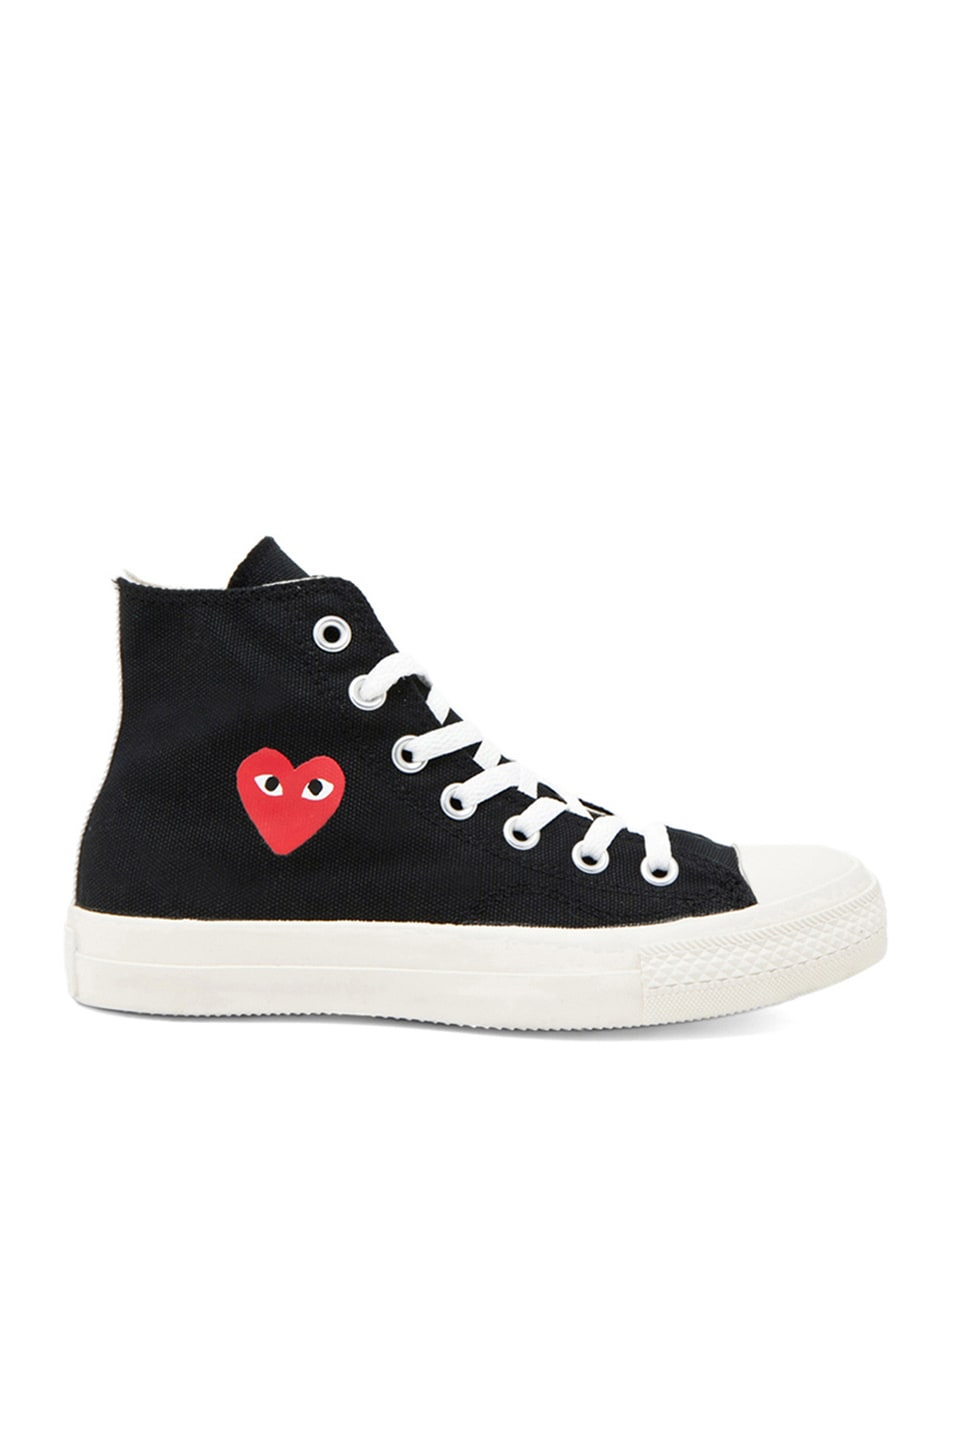 ed62a90358e5a Image 1 of Comme Des Garcons PLAY Converse High Top Canvas Sneakers in Black  & Red